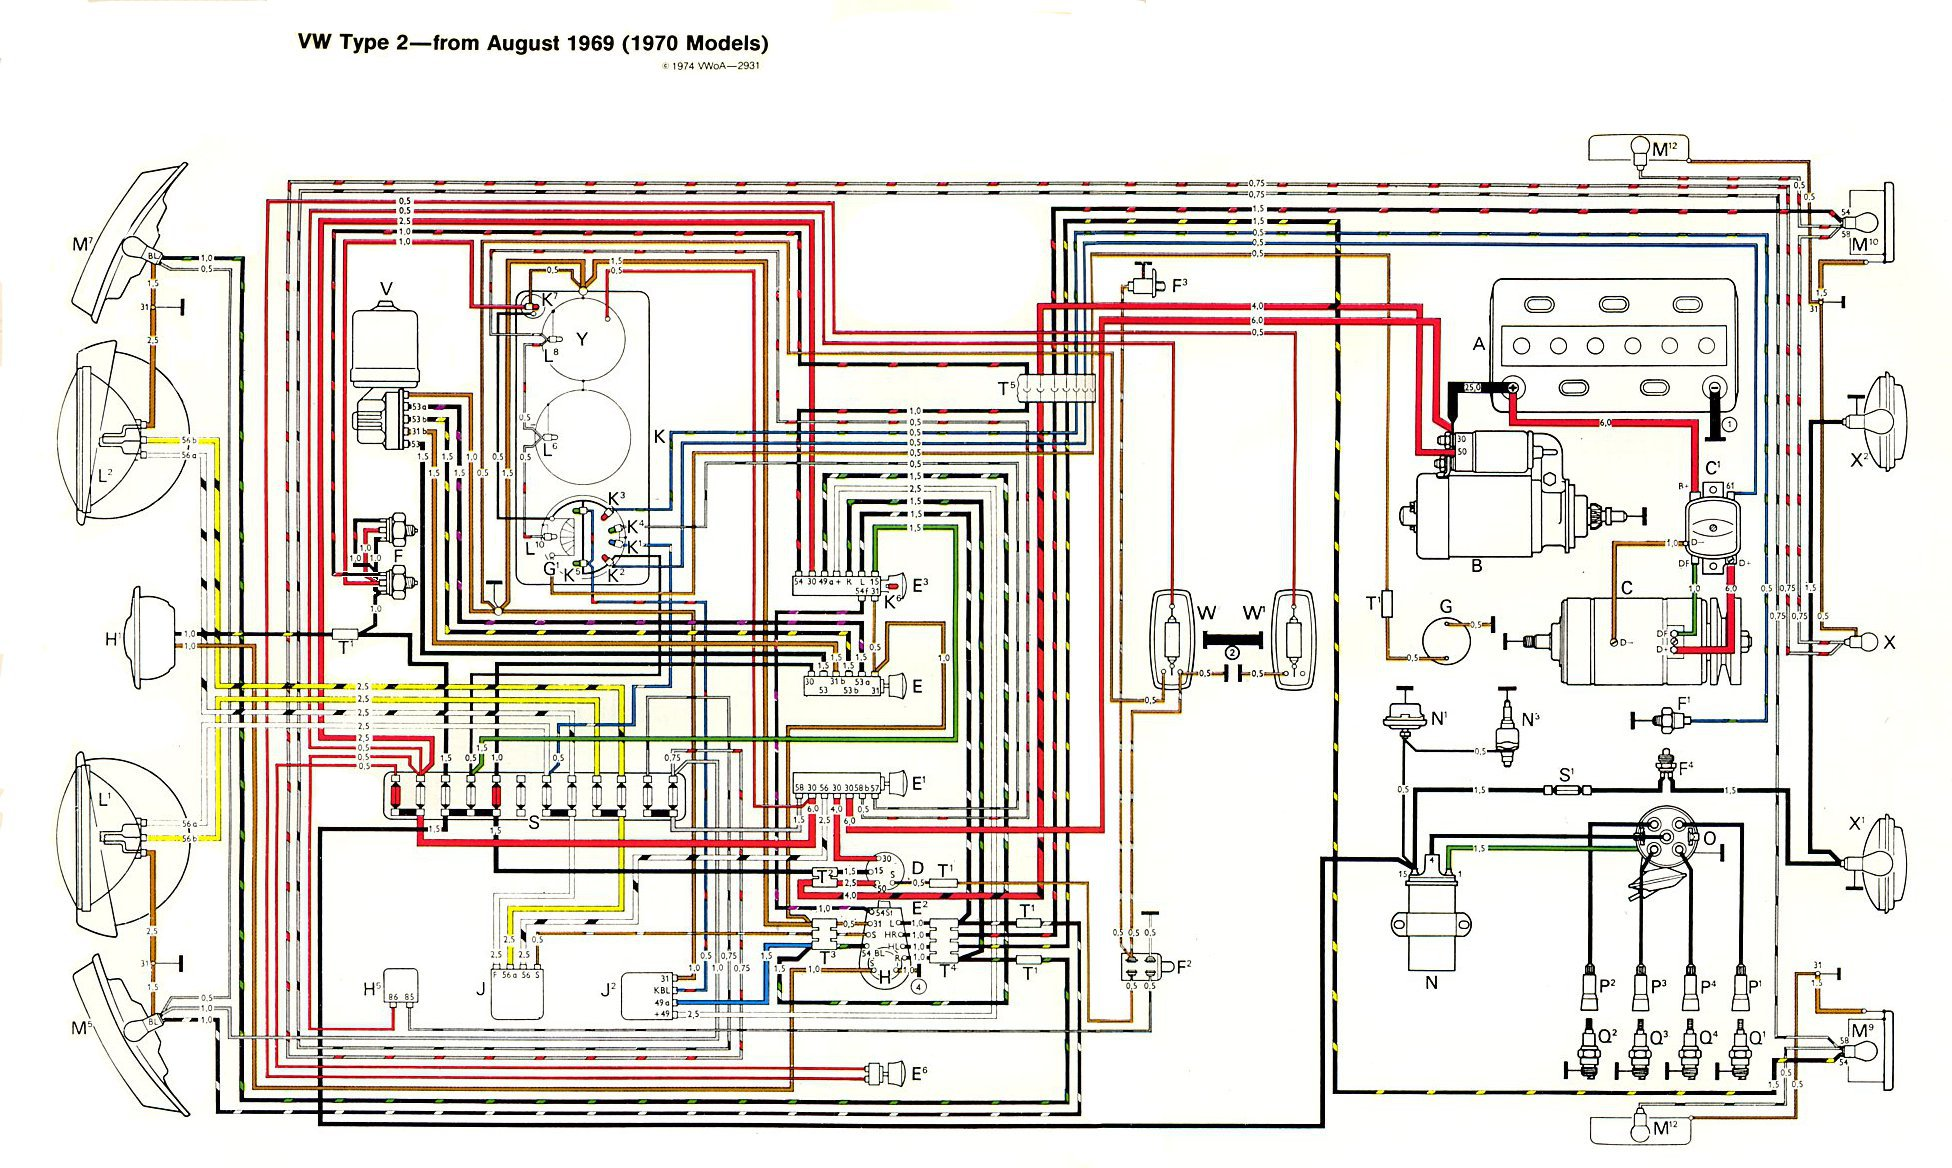 Type 2 Wiring Diagrams 85 Jeep Cj7 Ignition Diagram